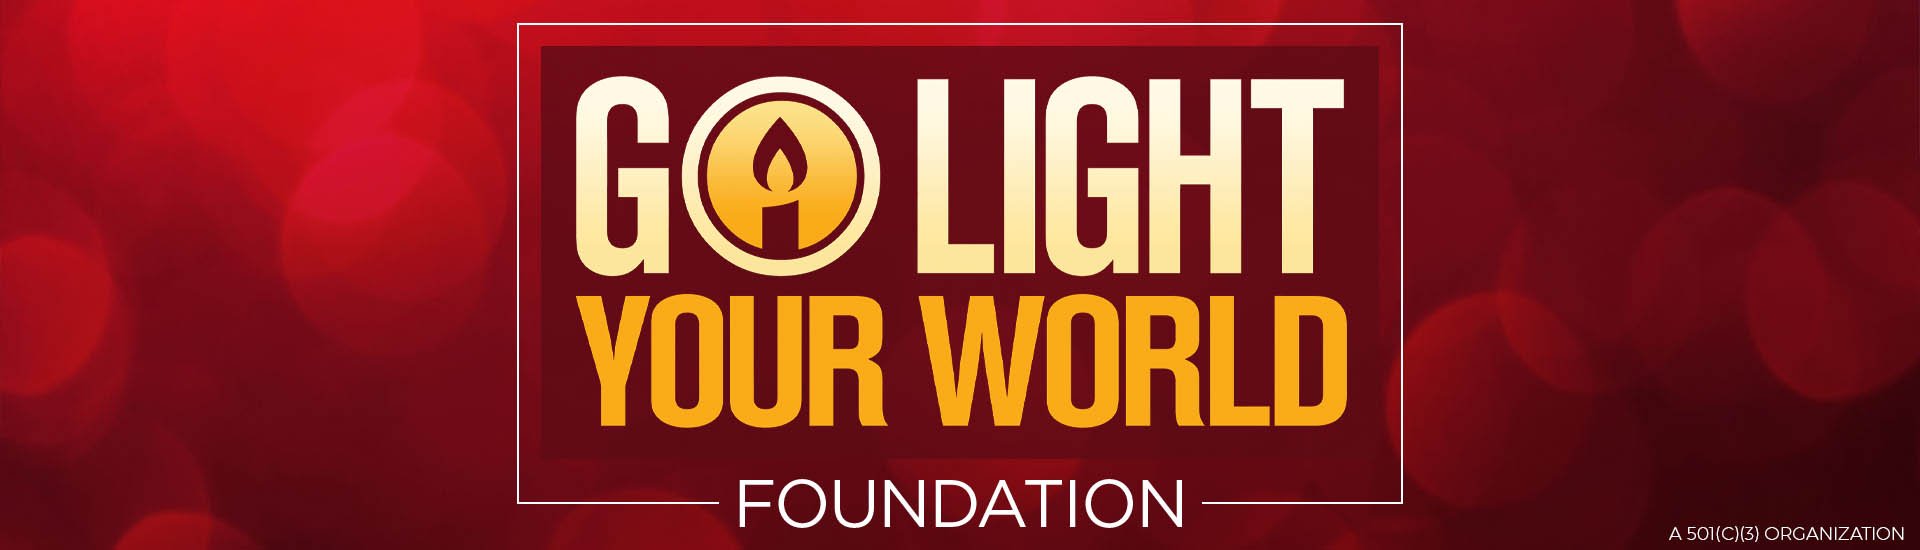 Go Light Your World Foundation